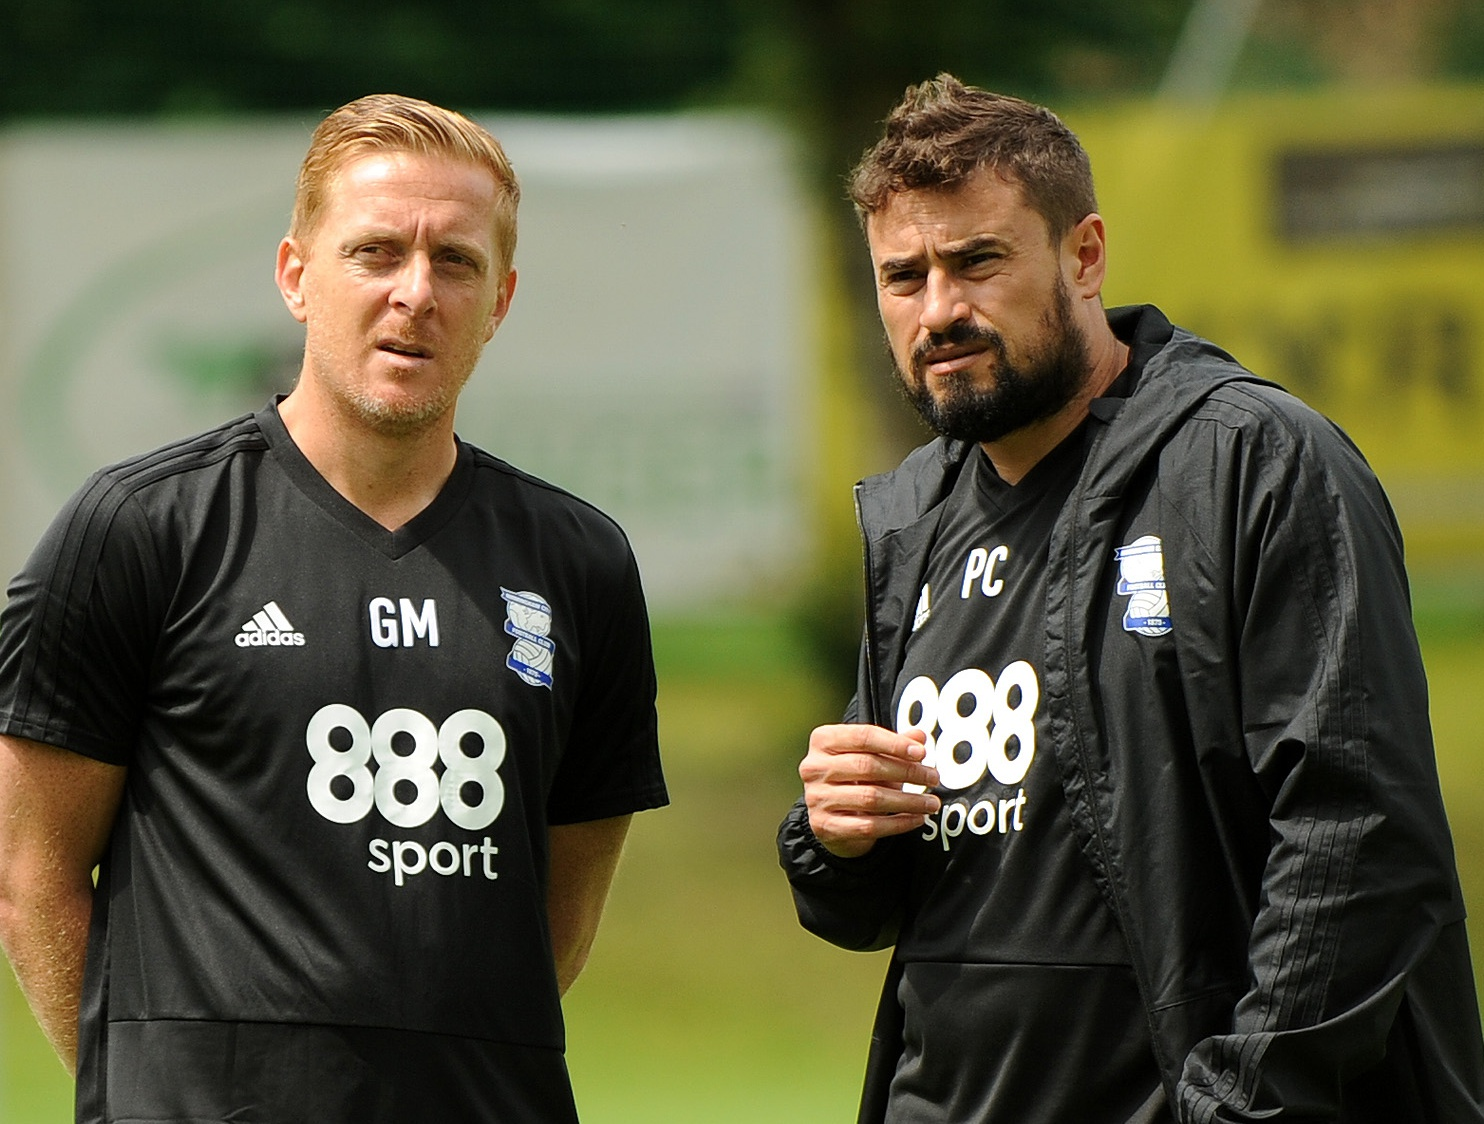 Garry Monk & Pep Clotet: the Championship's ideal management team